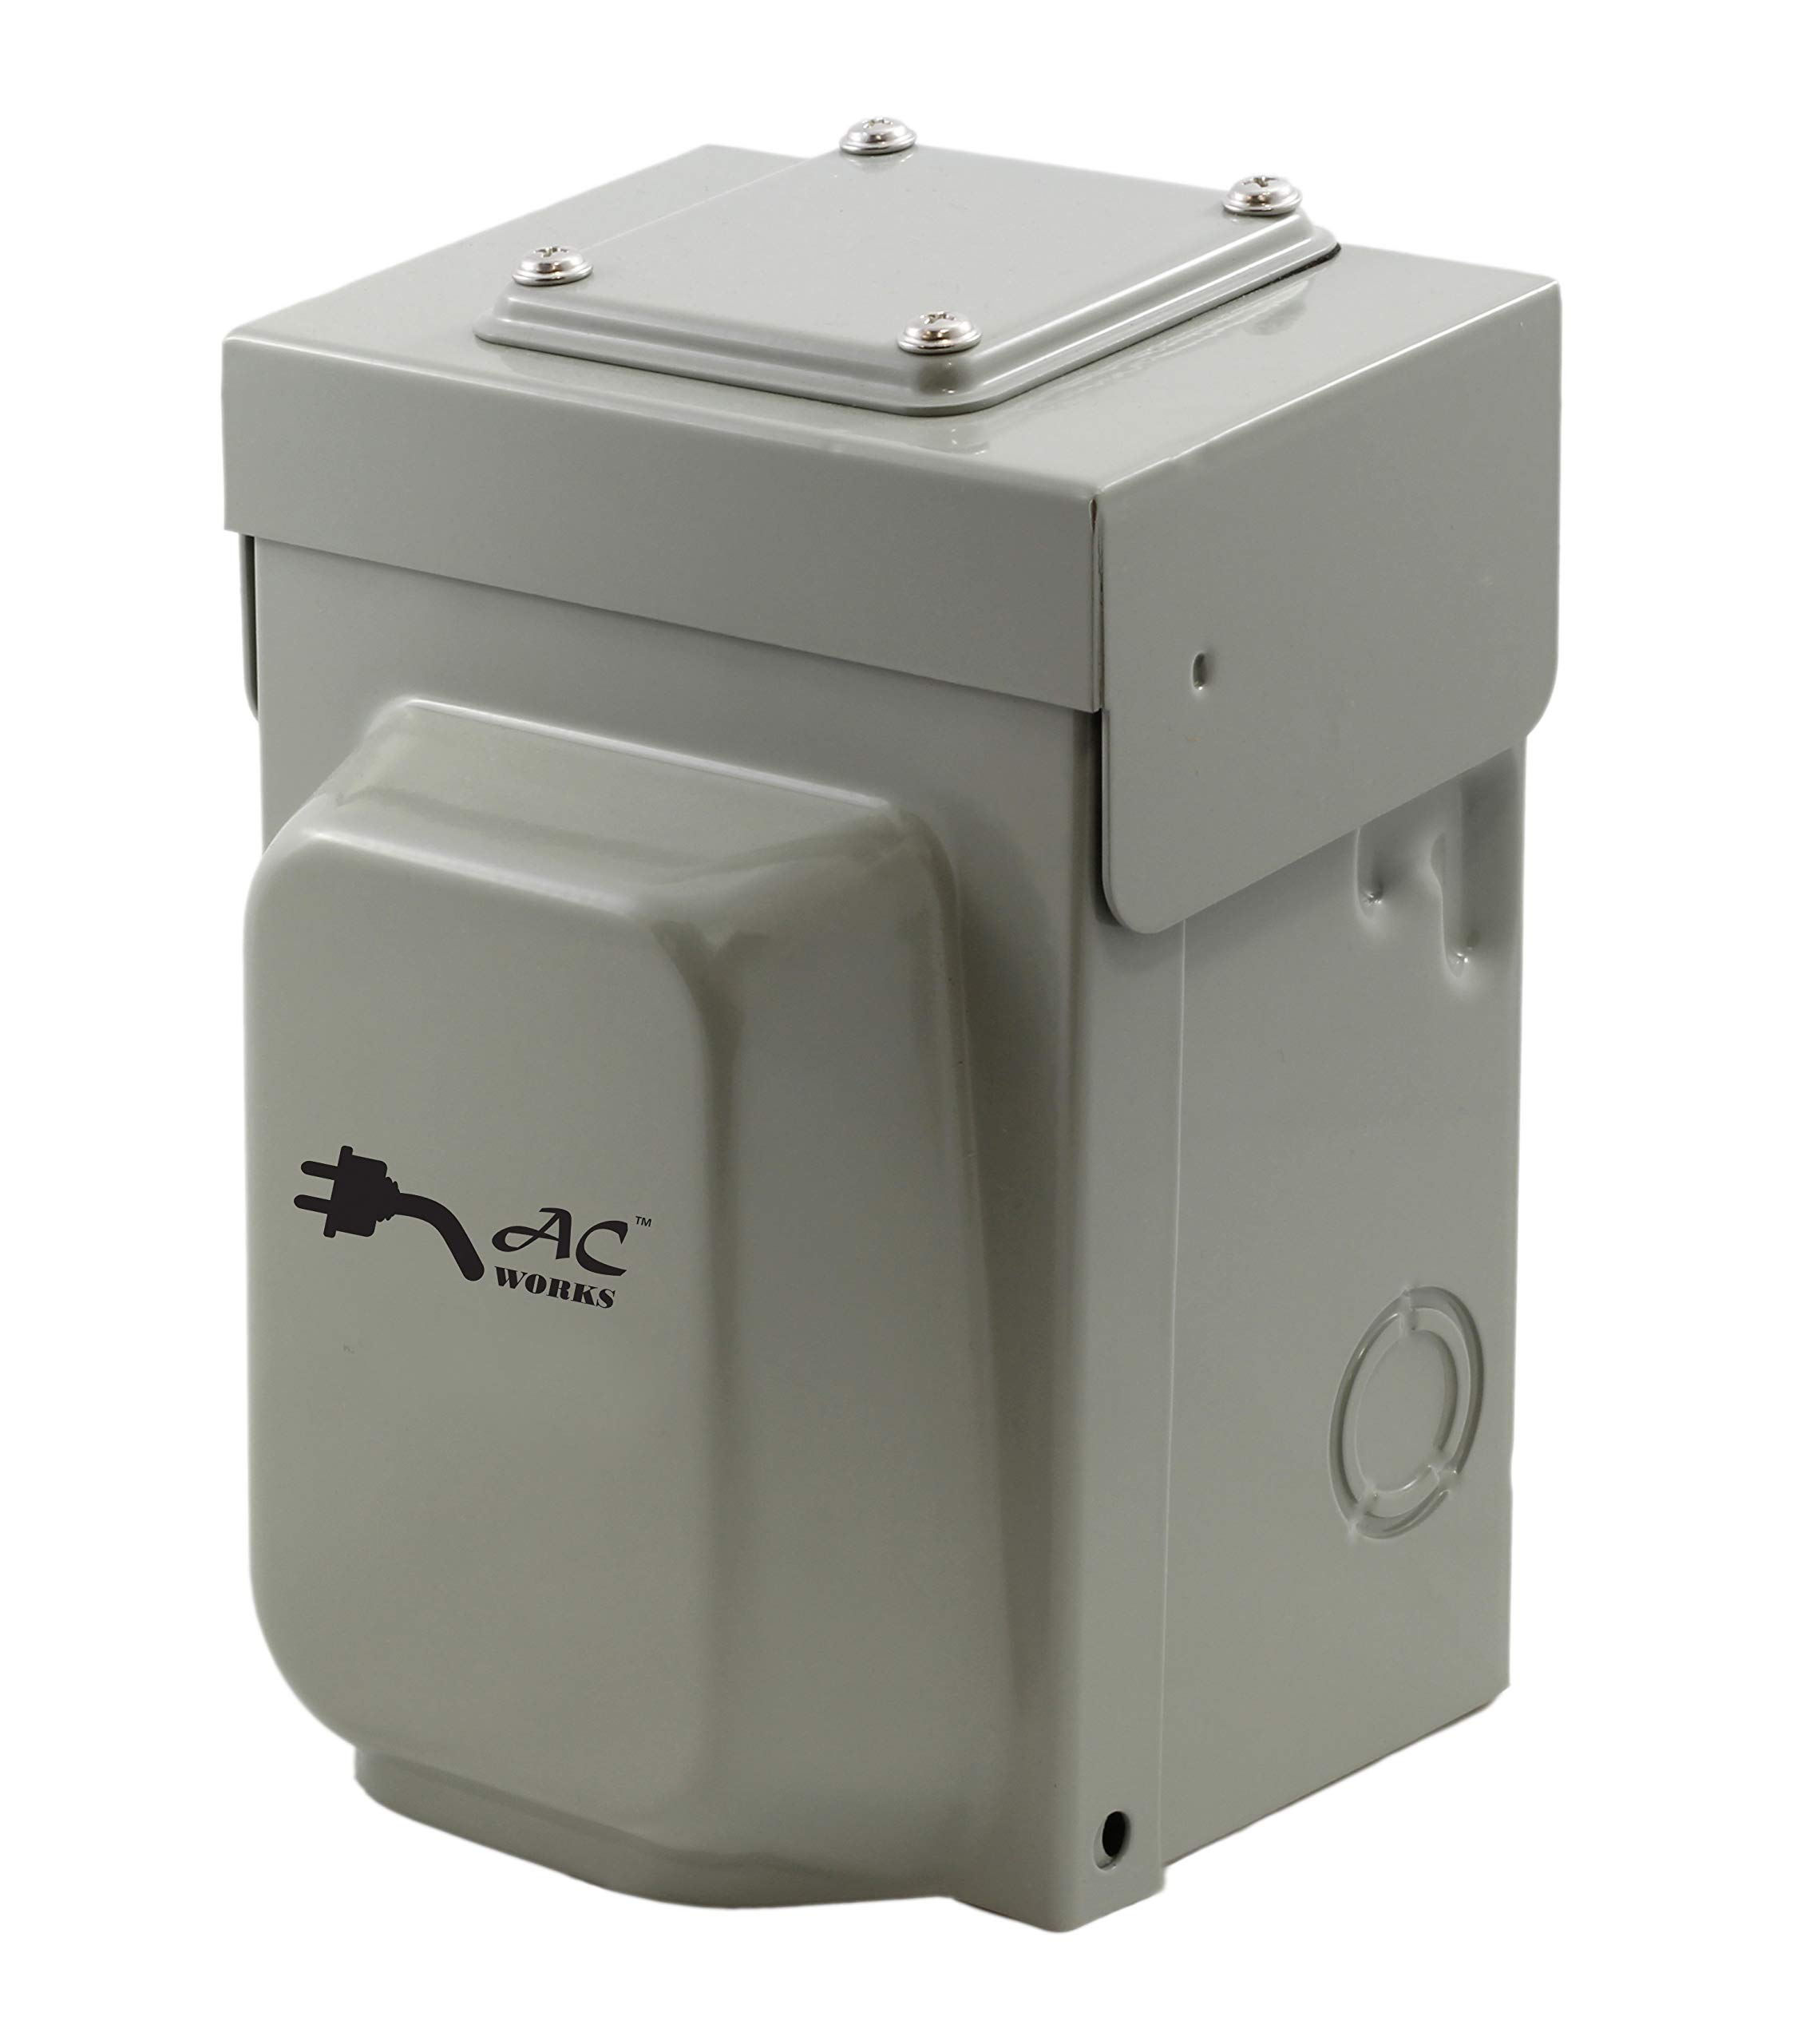 AC WORKS Super Durable Industrial Grade Locking Power Input Inlet (L14-20 Metal Box) by AC WORKS